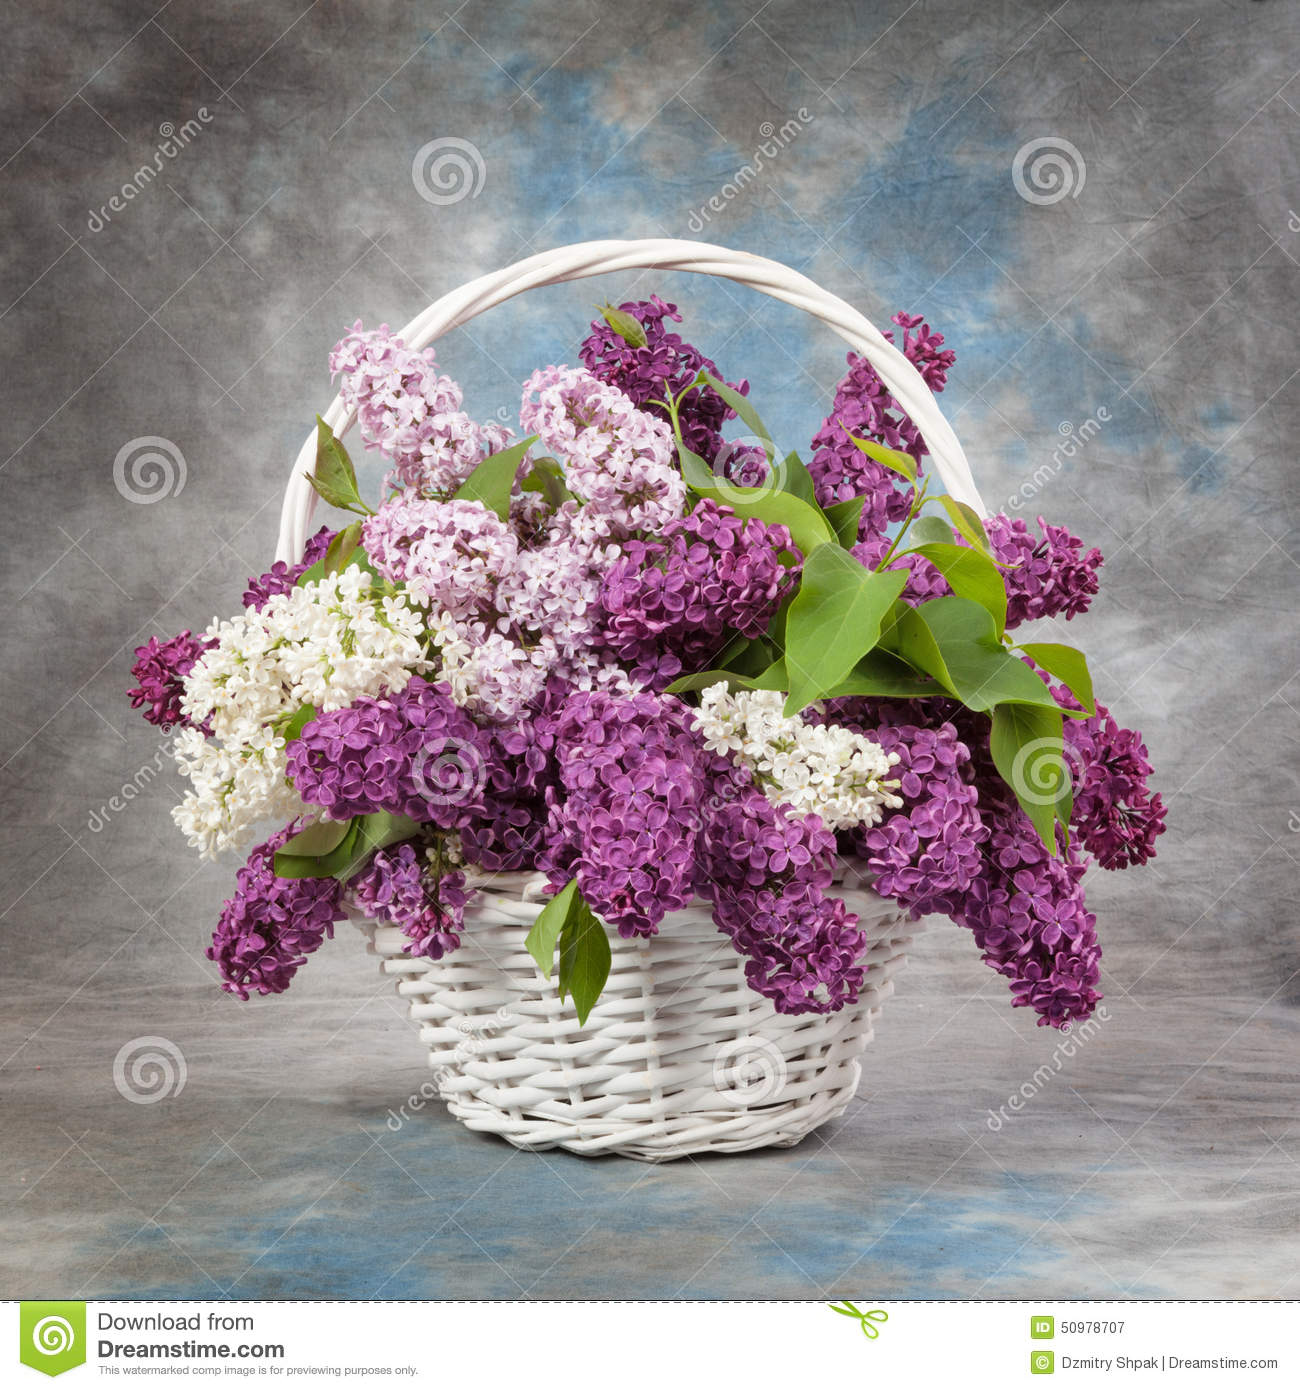 bouquet de source le muguet et lilas dans un panier photo stock image 50978707. Black Bedroom Furniture Sets. Home Design Ideas